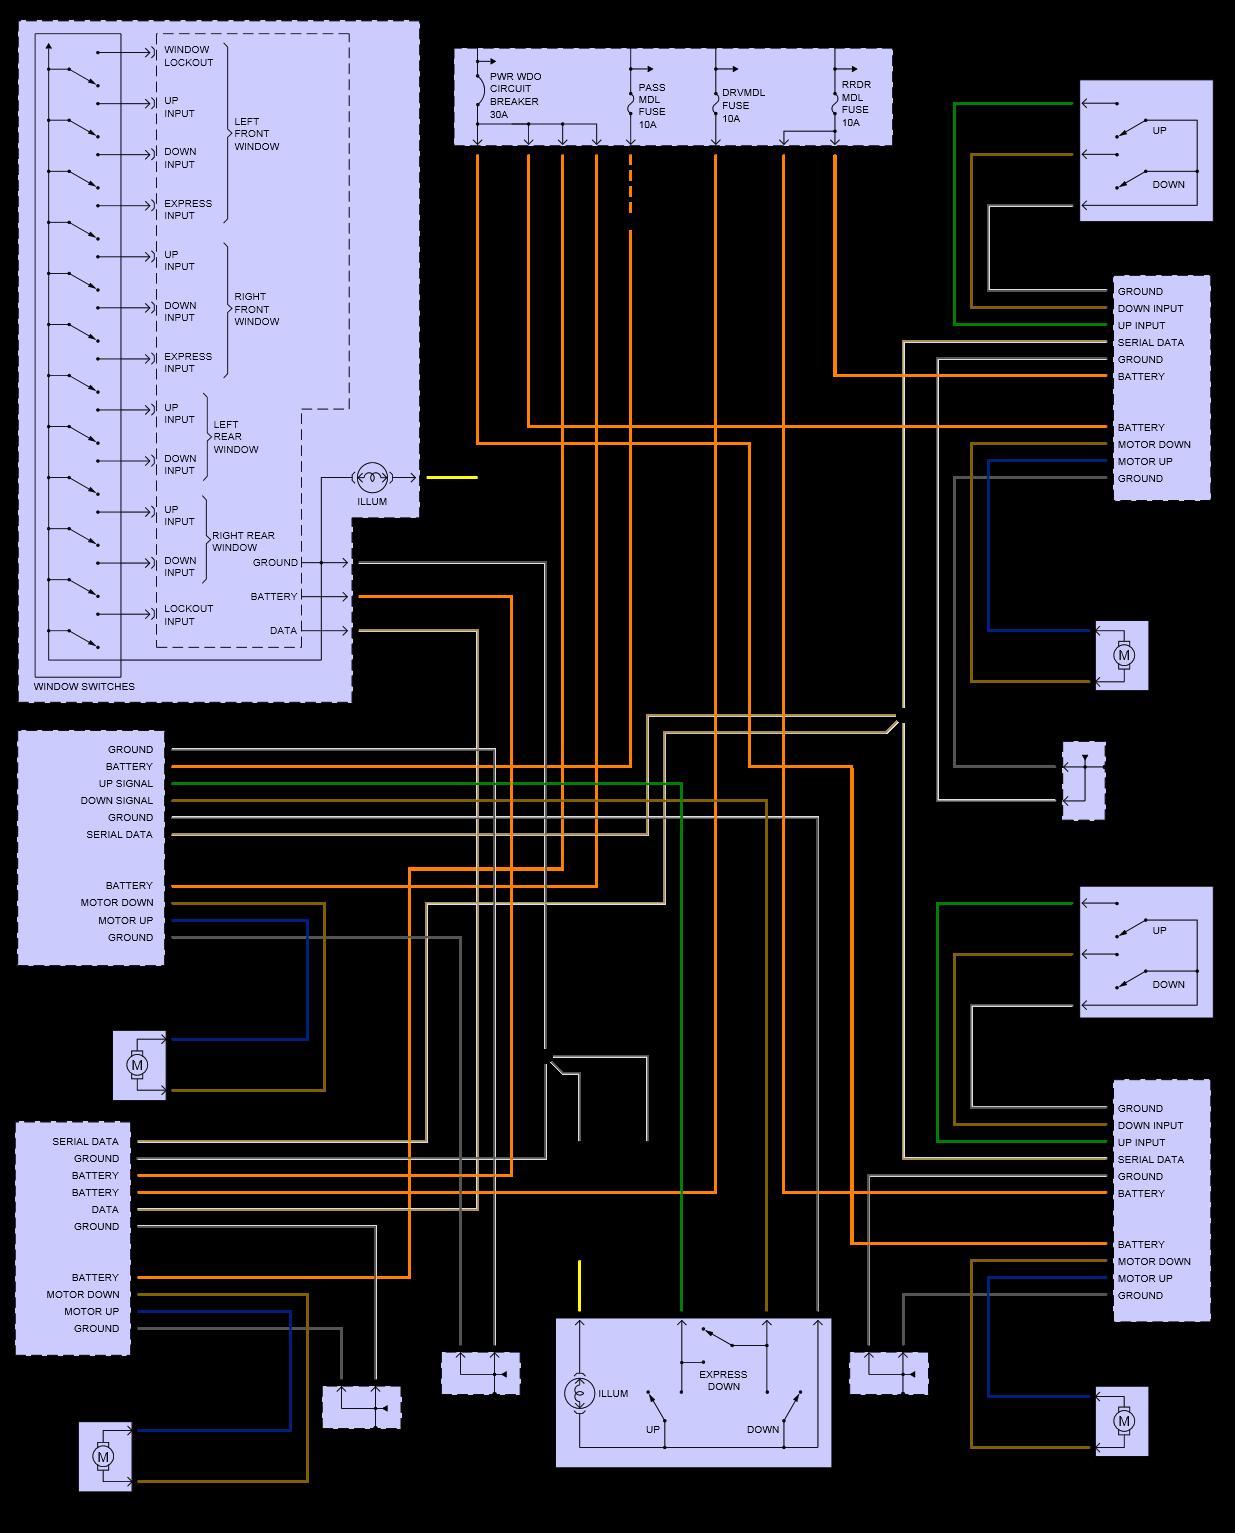 hight resolution of 2001 buick century stereo wiring diagram download wiring diagram rh faceitsalon com 1998 buick lesabre wiring